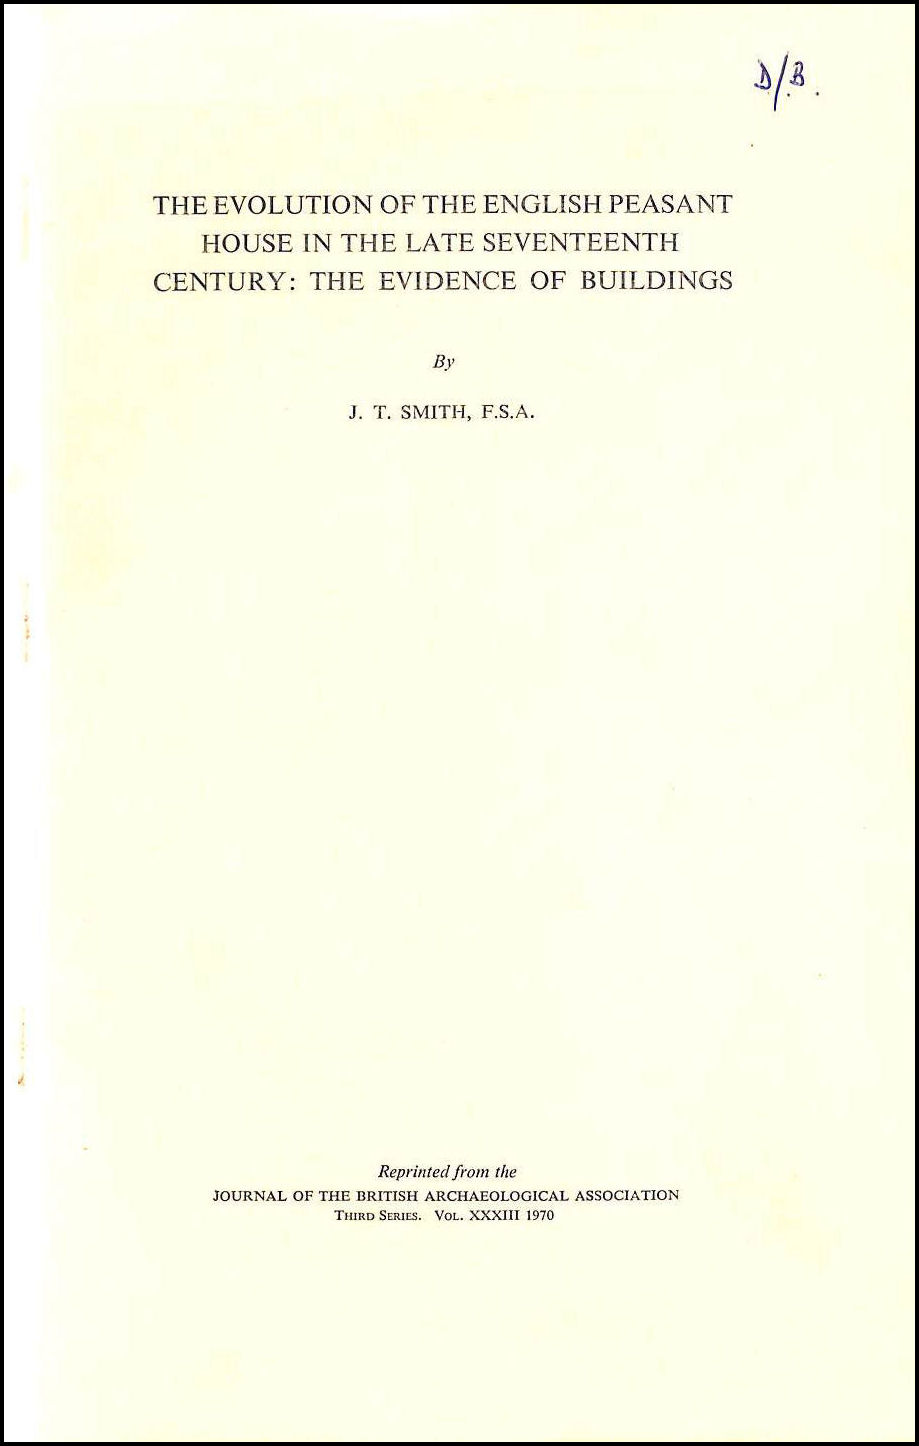 The Evolution of the English Peasant House in the Late Seventeenth Century., Smith, J